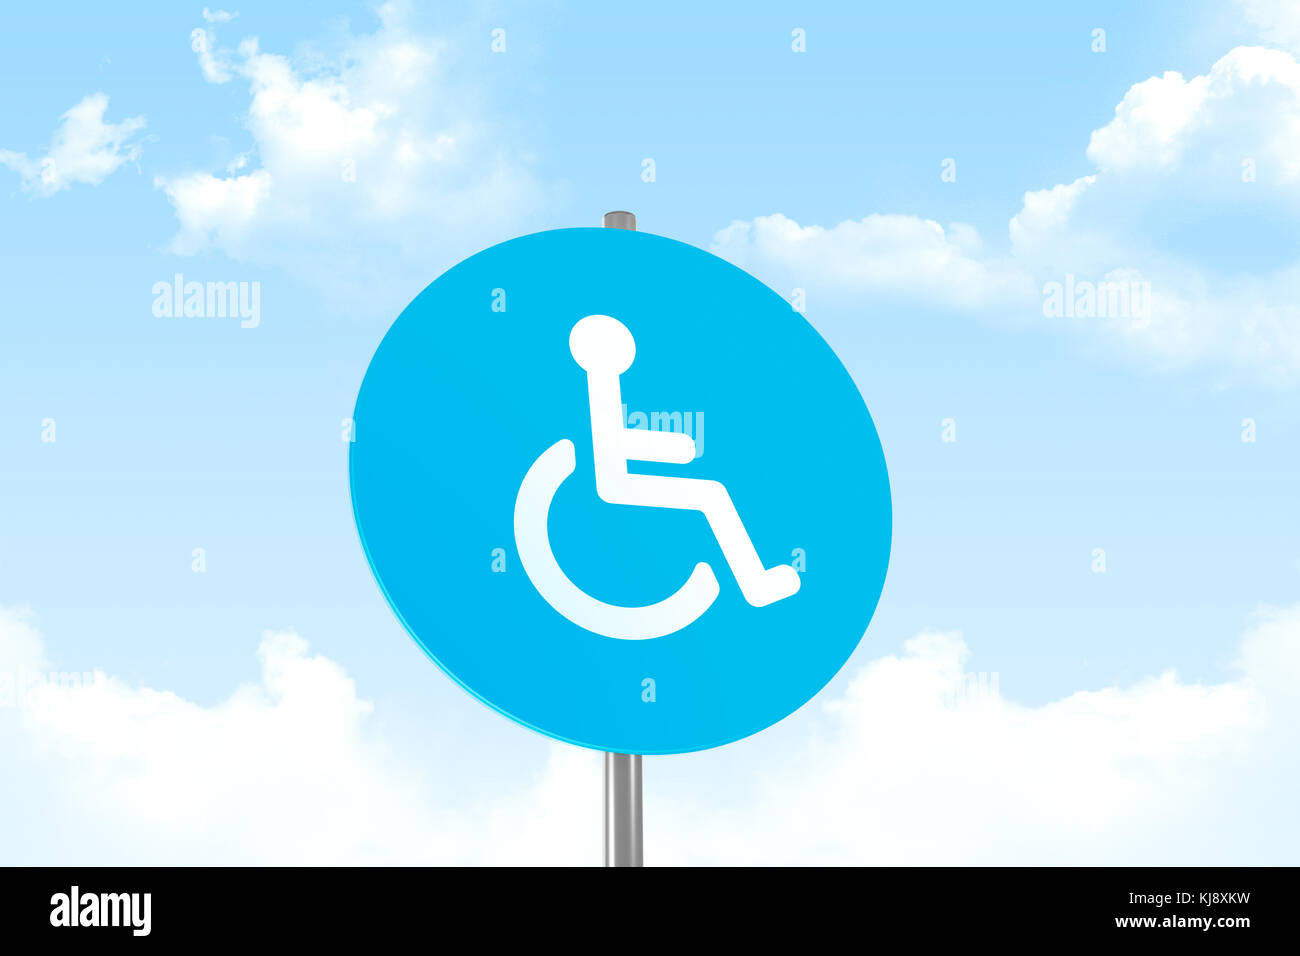 View of disabled wheel chair person sign for handicap parking area on cloudy sky background. - Stock Image